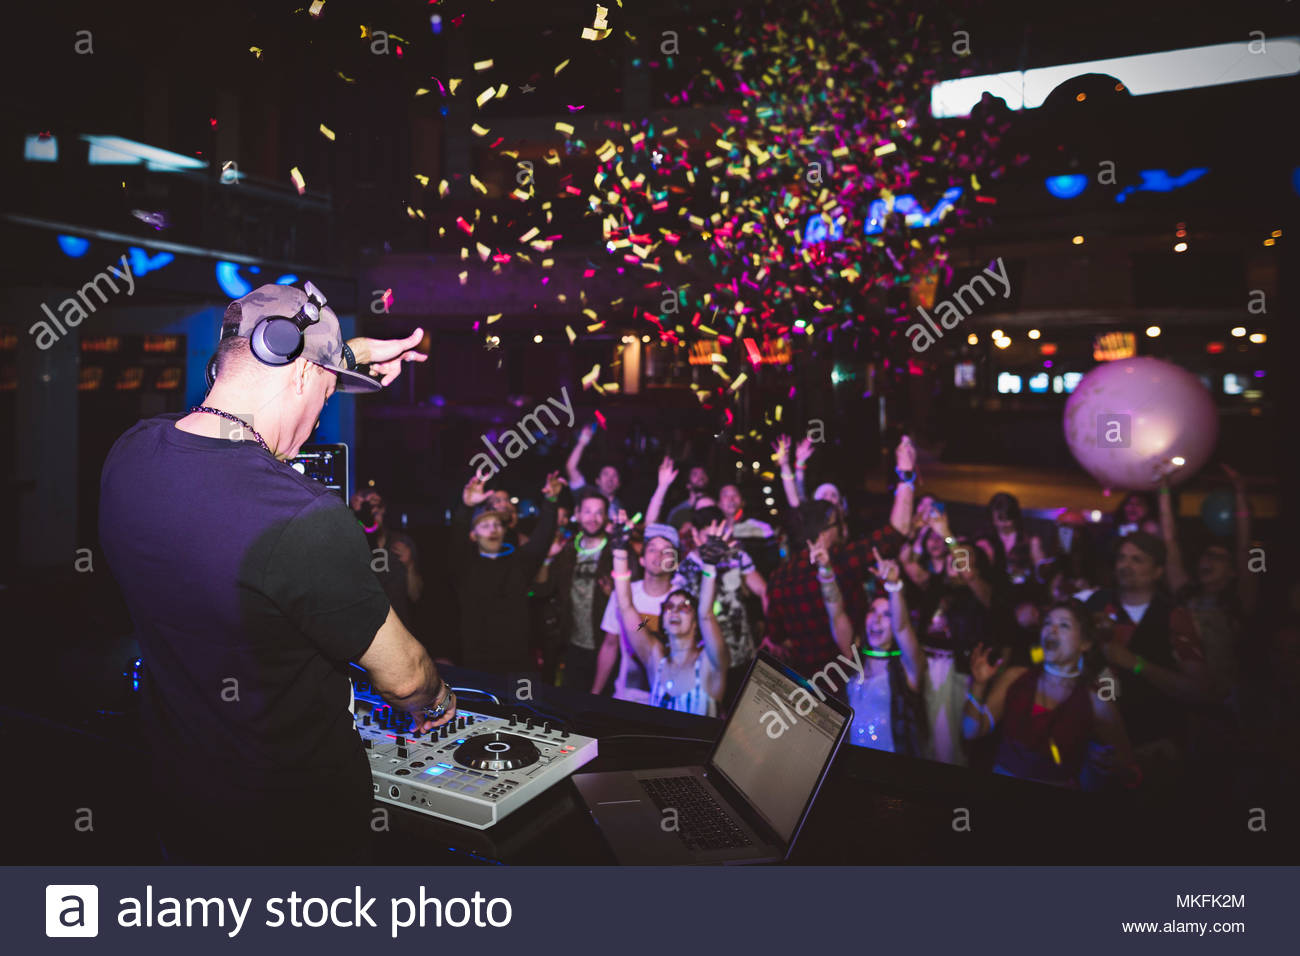 Confetti falling over DJ playing music and crowd dancing in nightclub - Stock Image